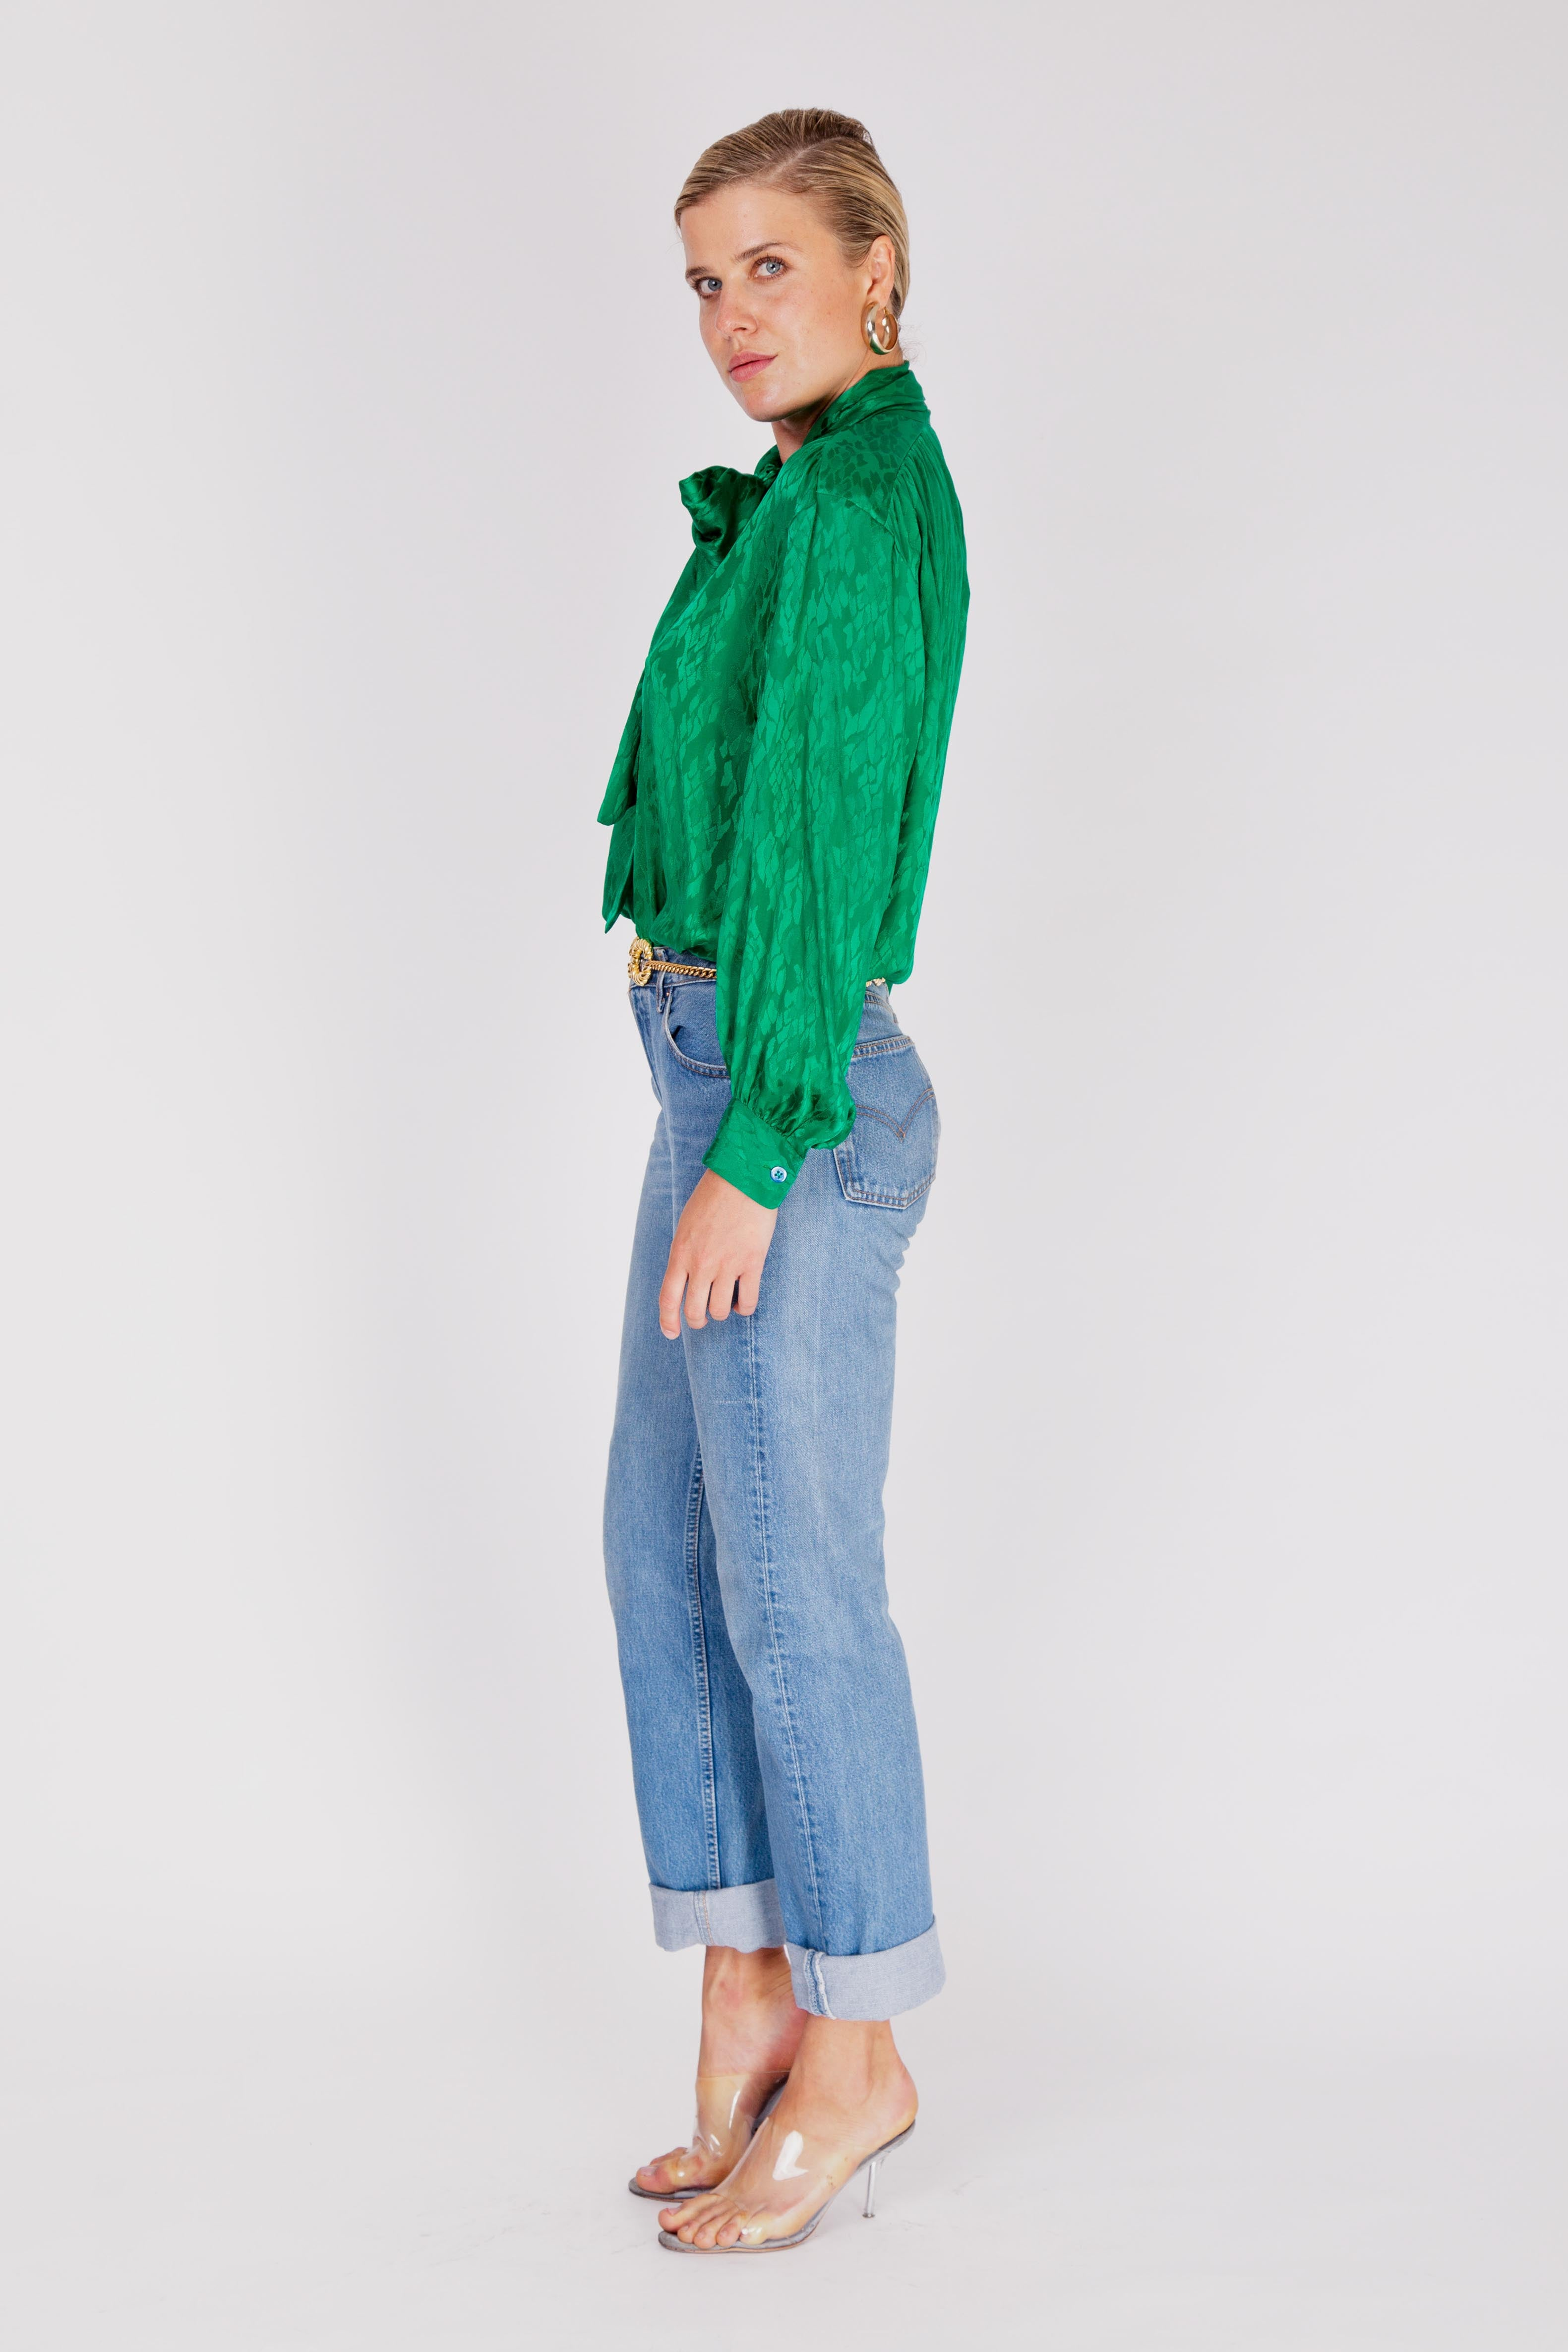 Yves Saint Laurent <br> 1980's emerald green silk pussy bow blouse